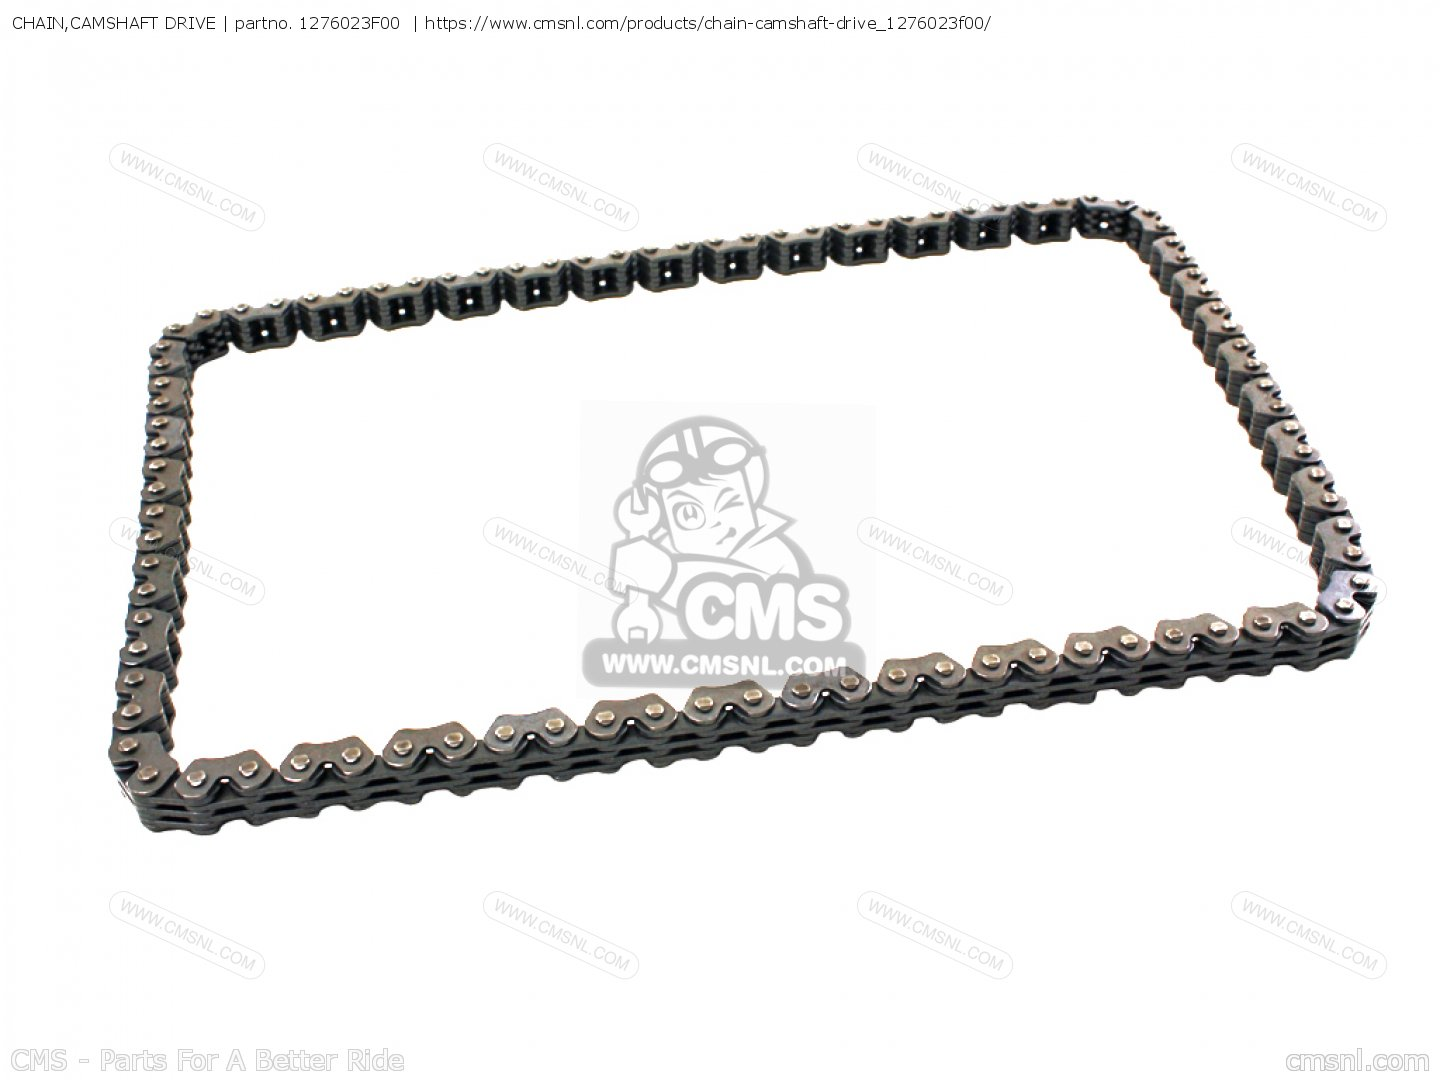 CHAIN,CAMSHAFT DRIVE for DL1000 VSTROM 2002 (K2) USA (E03